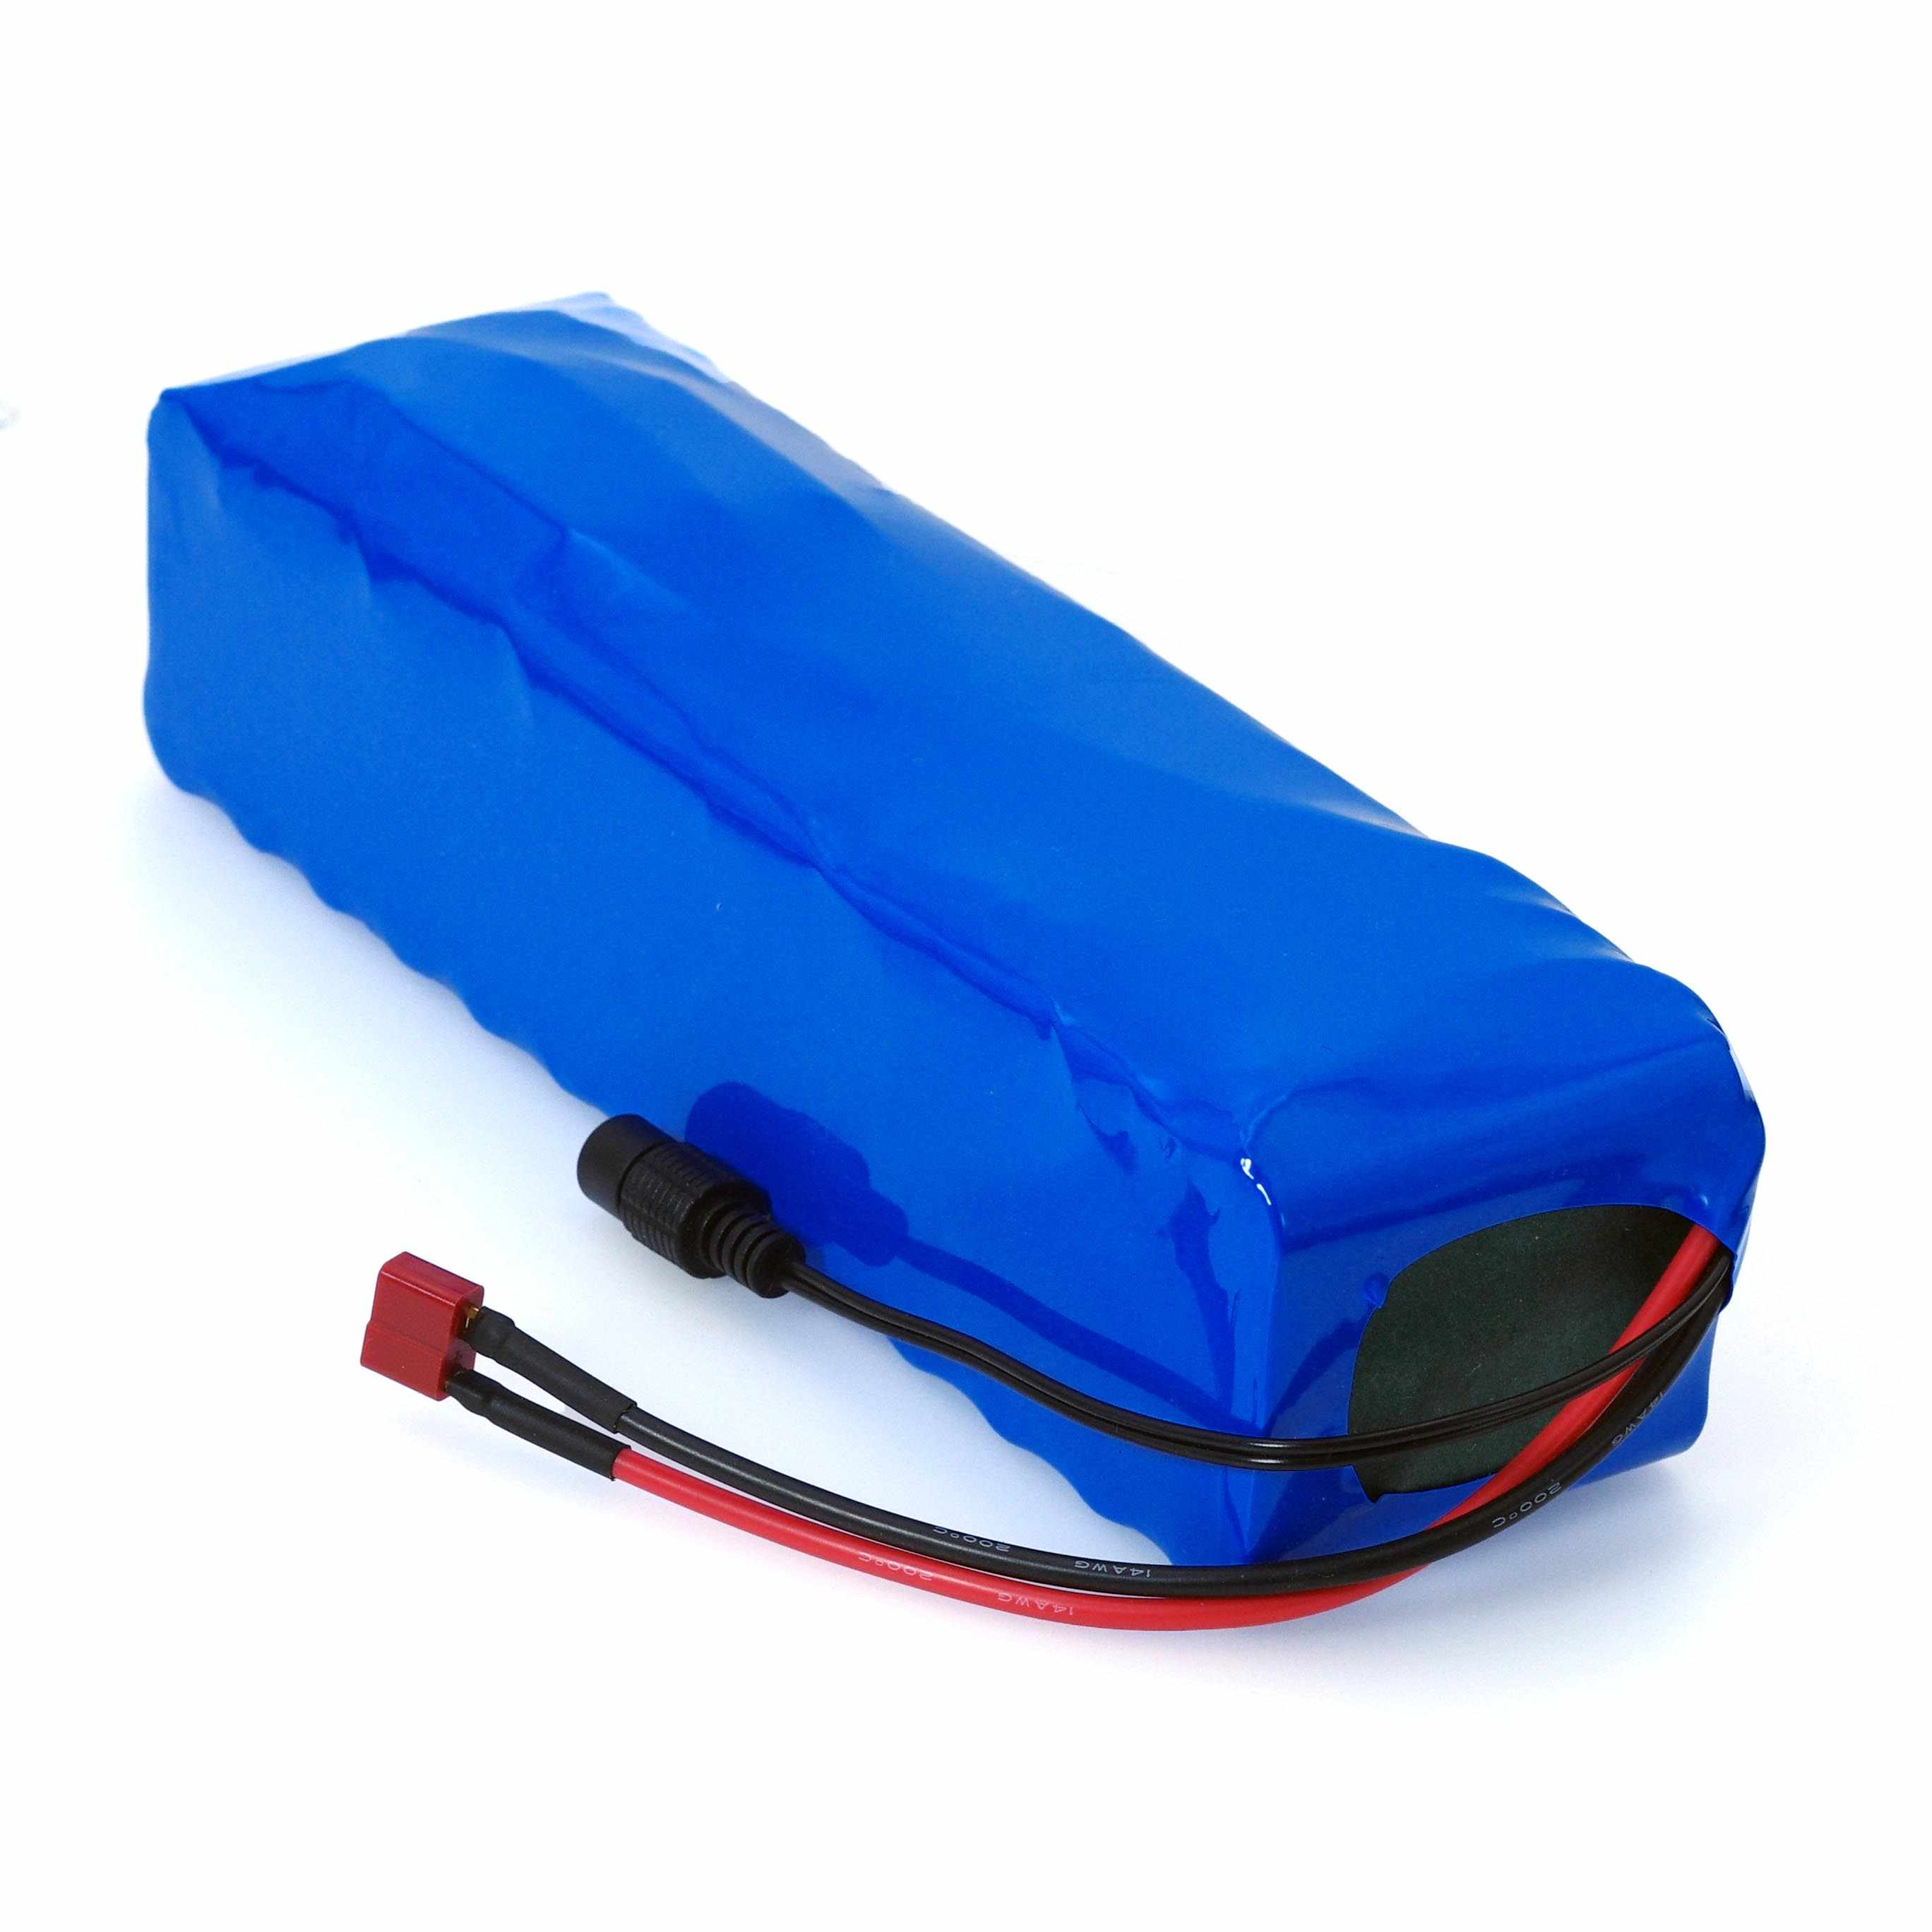 LiitoKala 48V 10AH 12ah Electric bike battery pack 48V 500W 750W scooter Lithium ion battery  with 20A BMS 54.6V 2A Charger